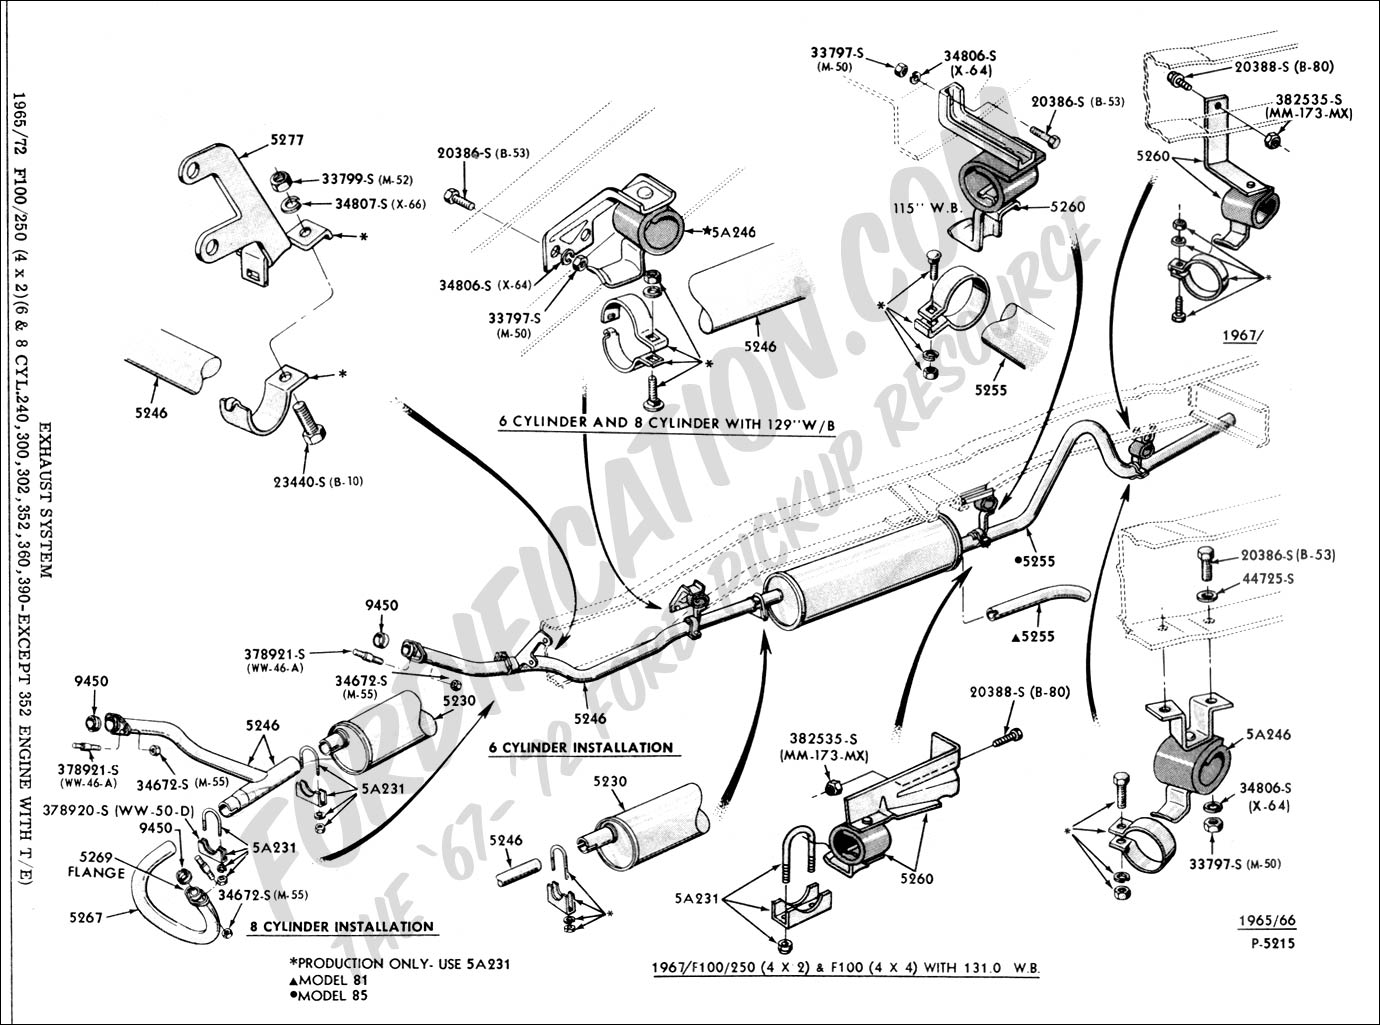 1985 ford f 150 wiring diagram 1985 ford f 150 exhaust system diagram wiring schematic diagram  1985 ford f 150 exhaust system diagram